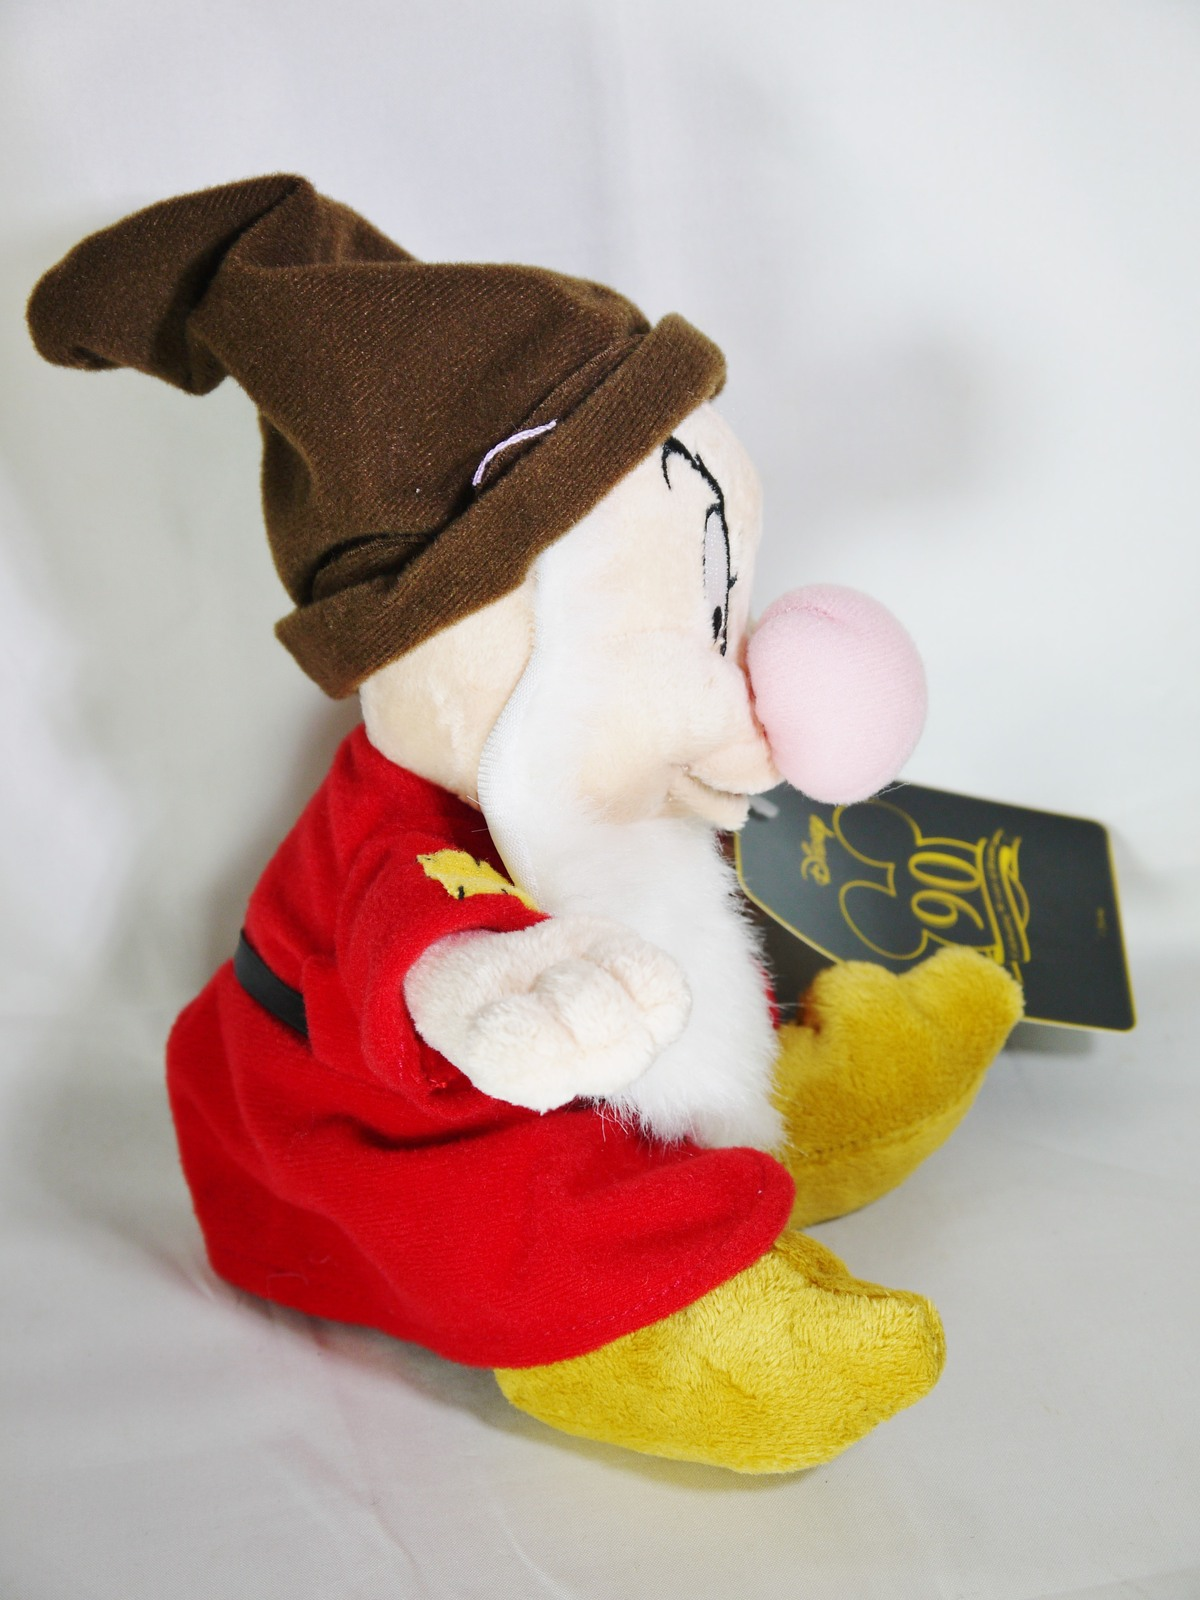 Disney Classic SNOW WHITE & 7 DWARFS Grumpy Plush Toy Small Size